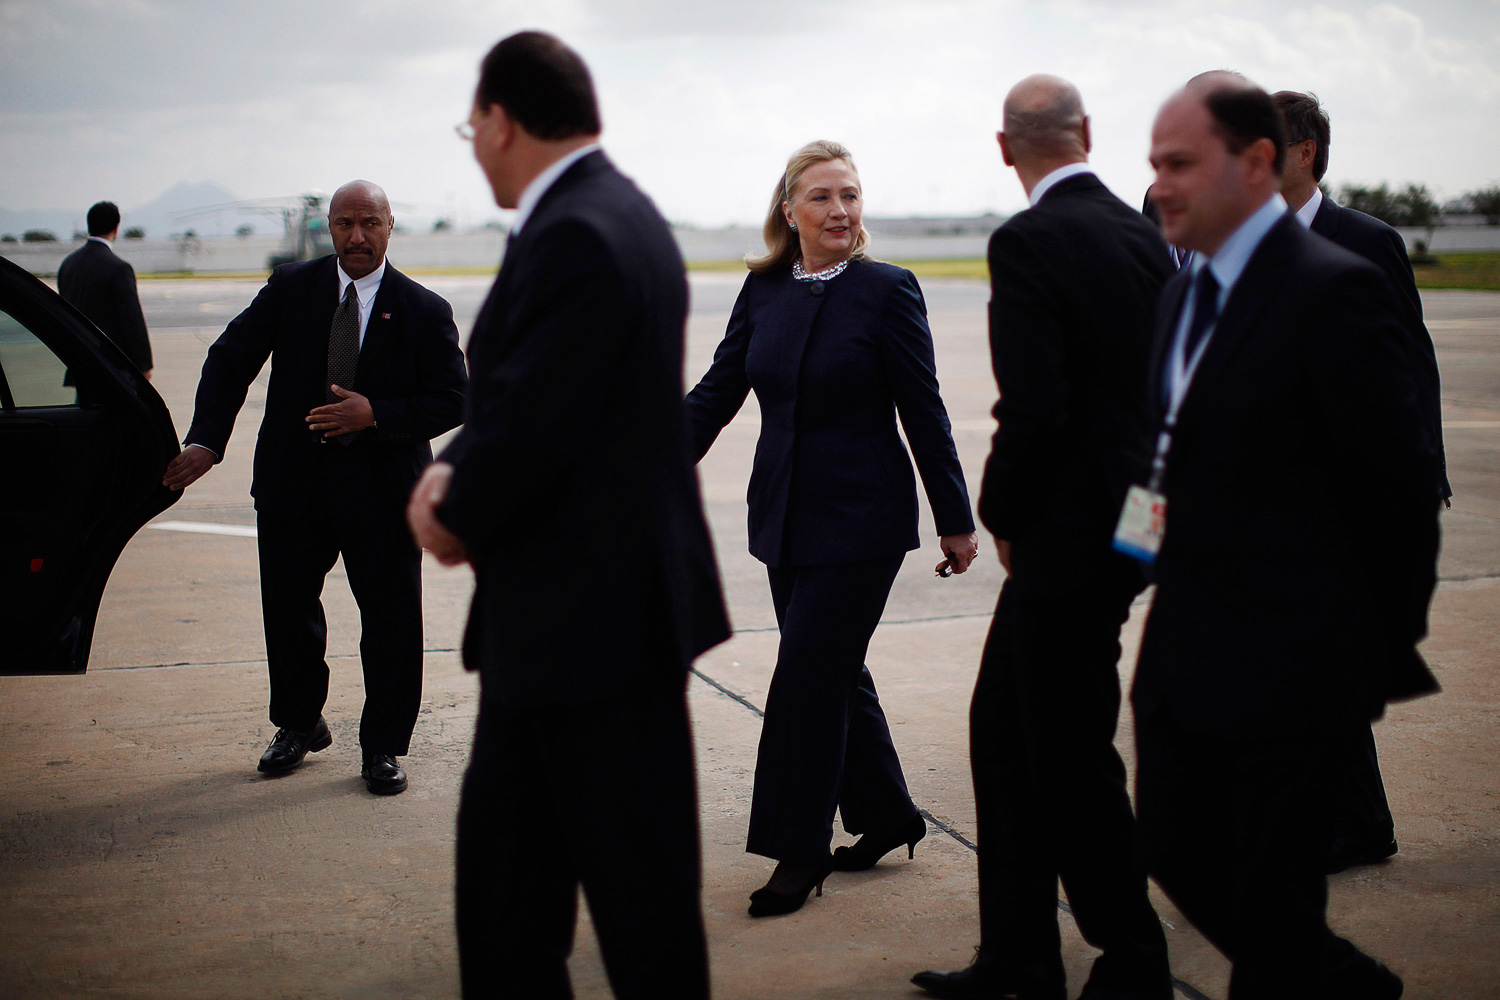 Feb. 24, 2012. U.S. Secretary of State Hillary Clinton arrives in Tunis to attend the  Friends of Syria  conference at which representatives from over 60 countries will discuss the crisis in Syria.